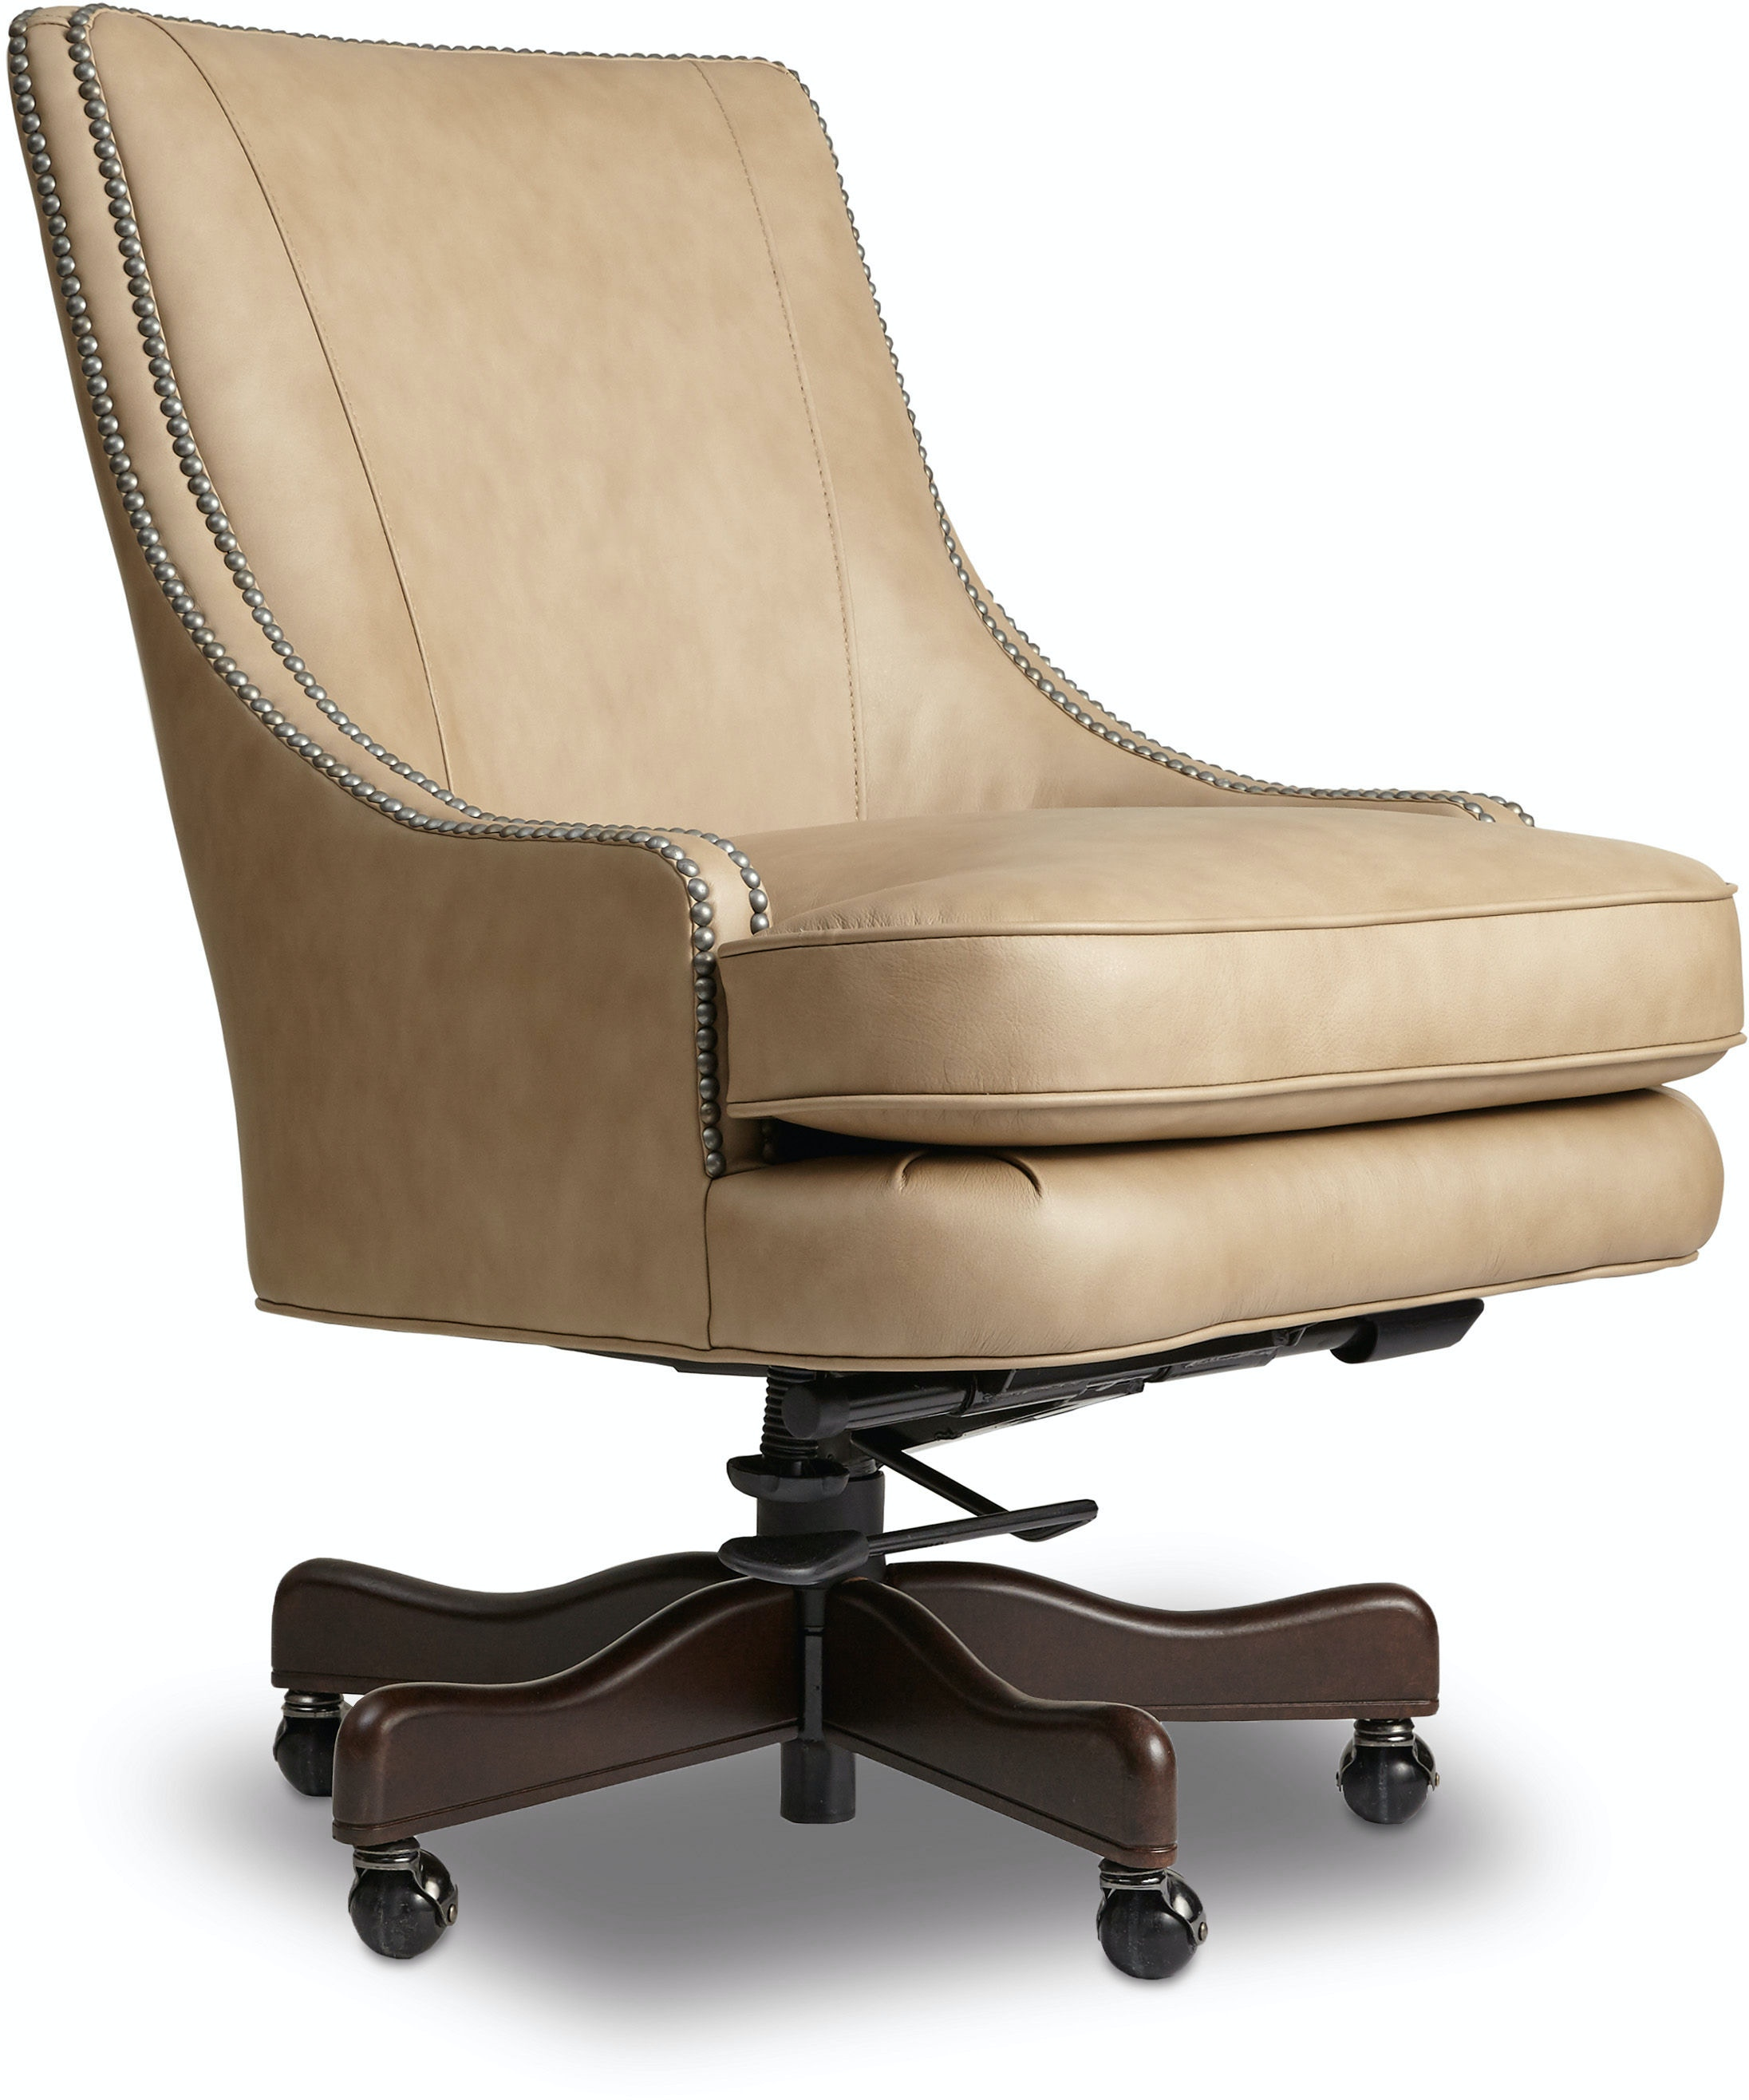 Hooker Furniture Patty Home fice Chair EC475 082